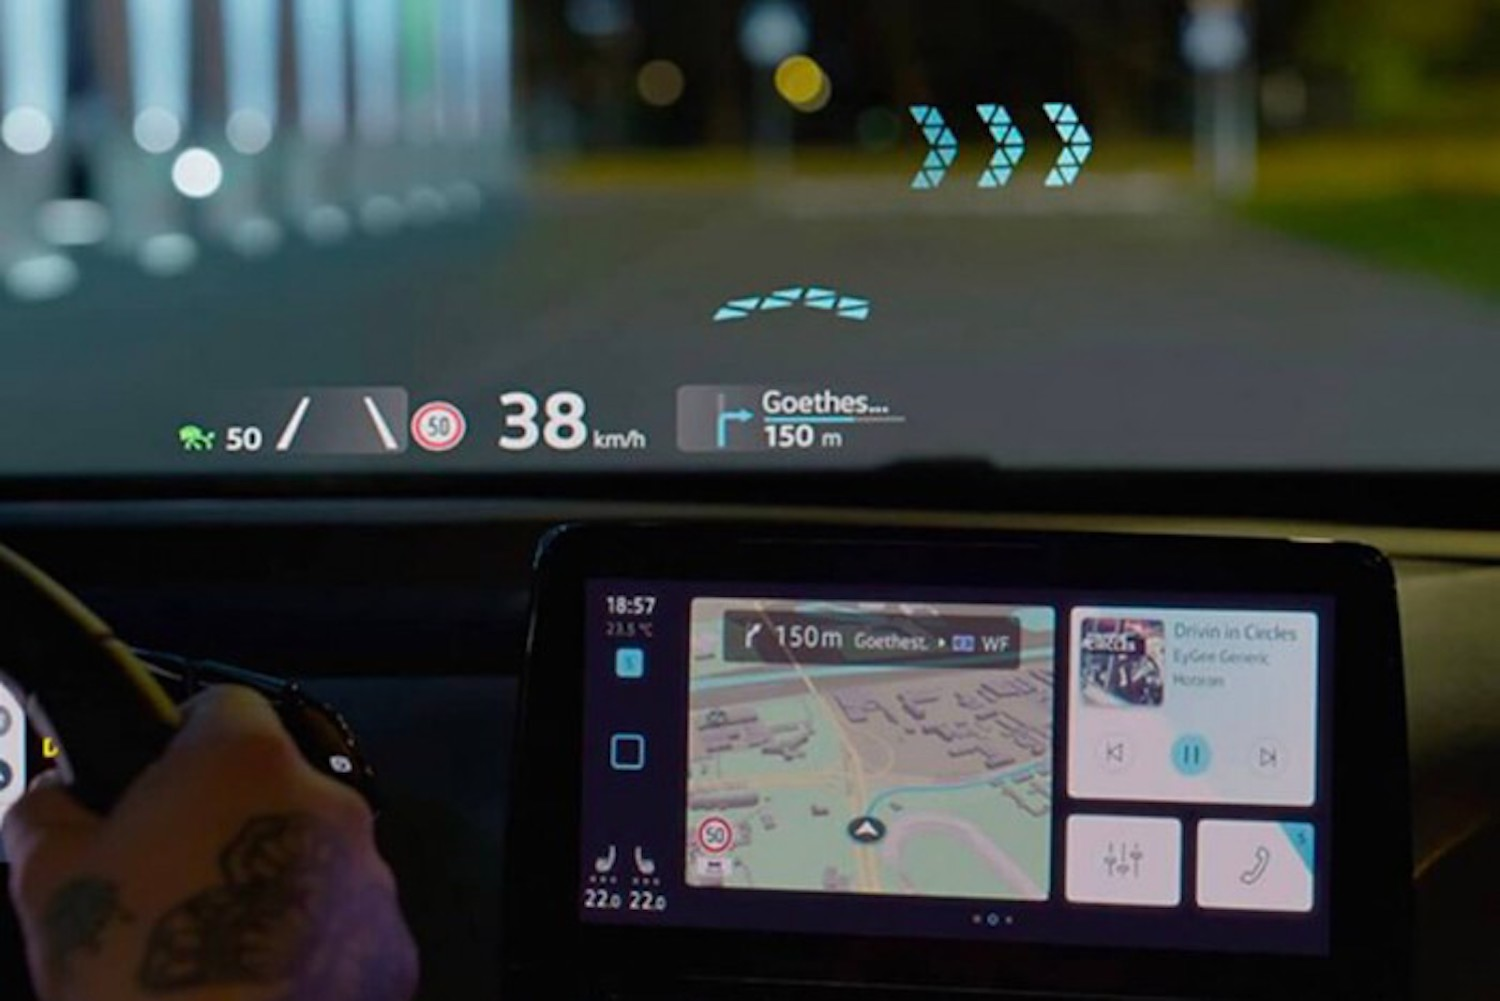 VW-ID3-Feature-Heads-Up-Display-Lease-an-VW-ID3-from-WeVee-700x467